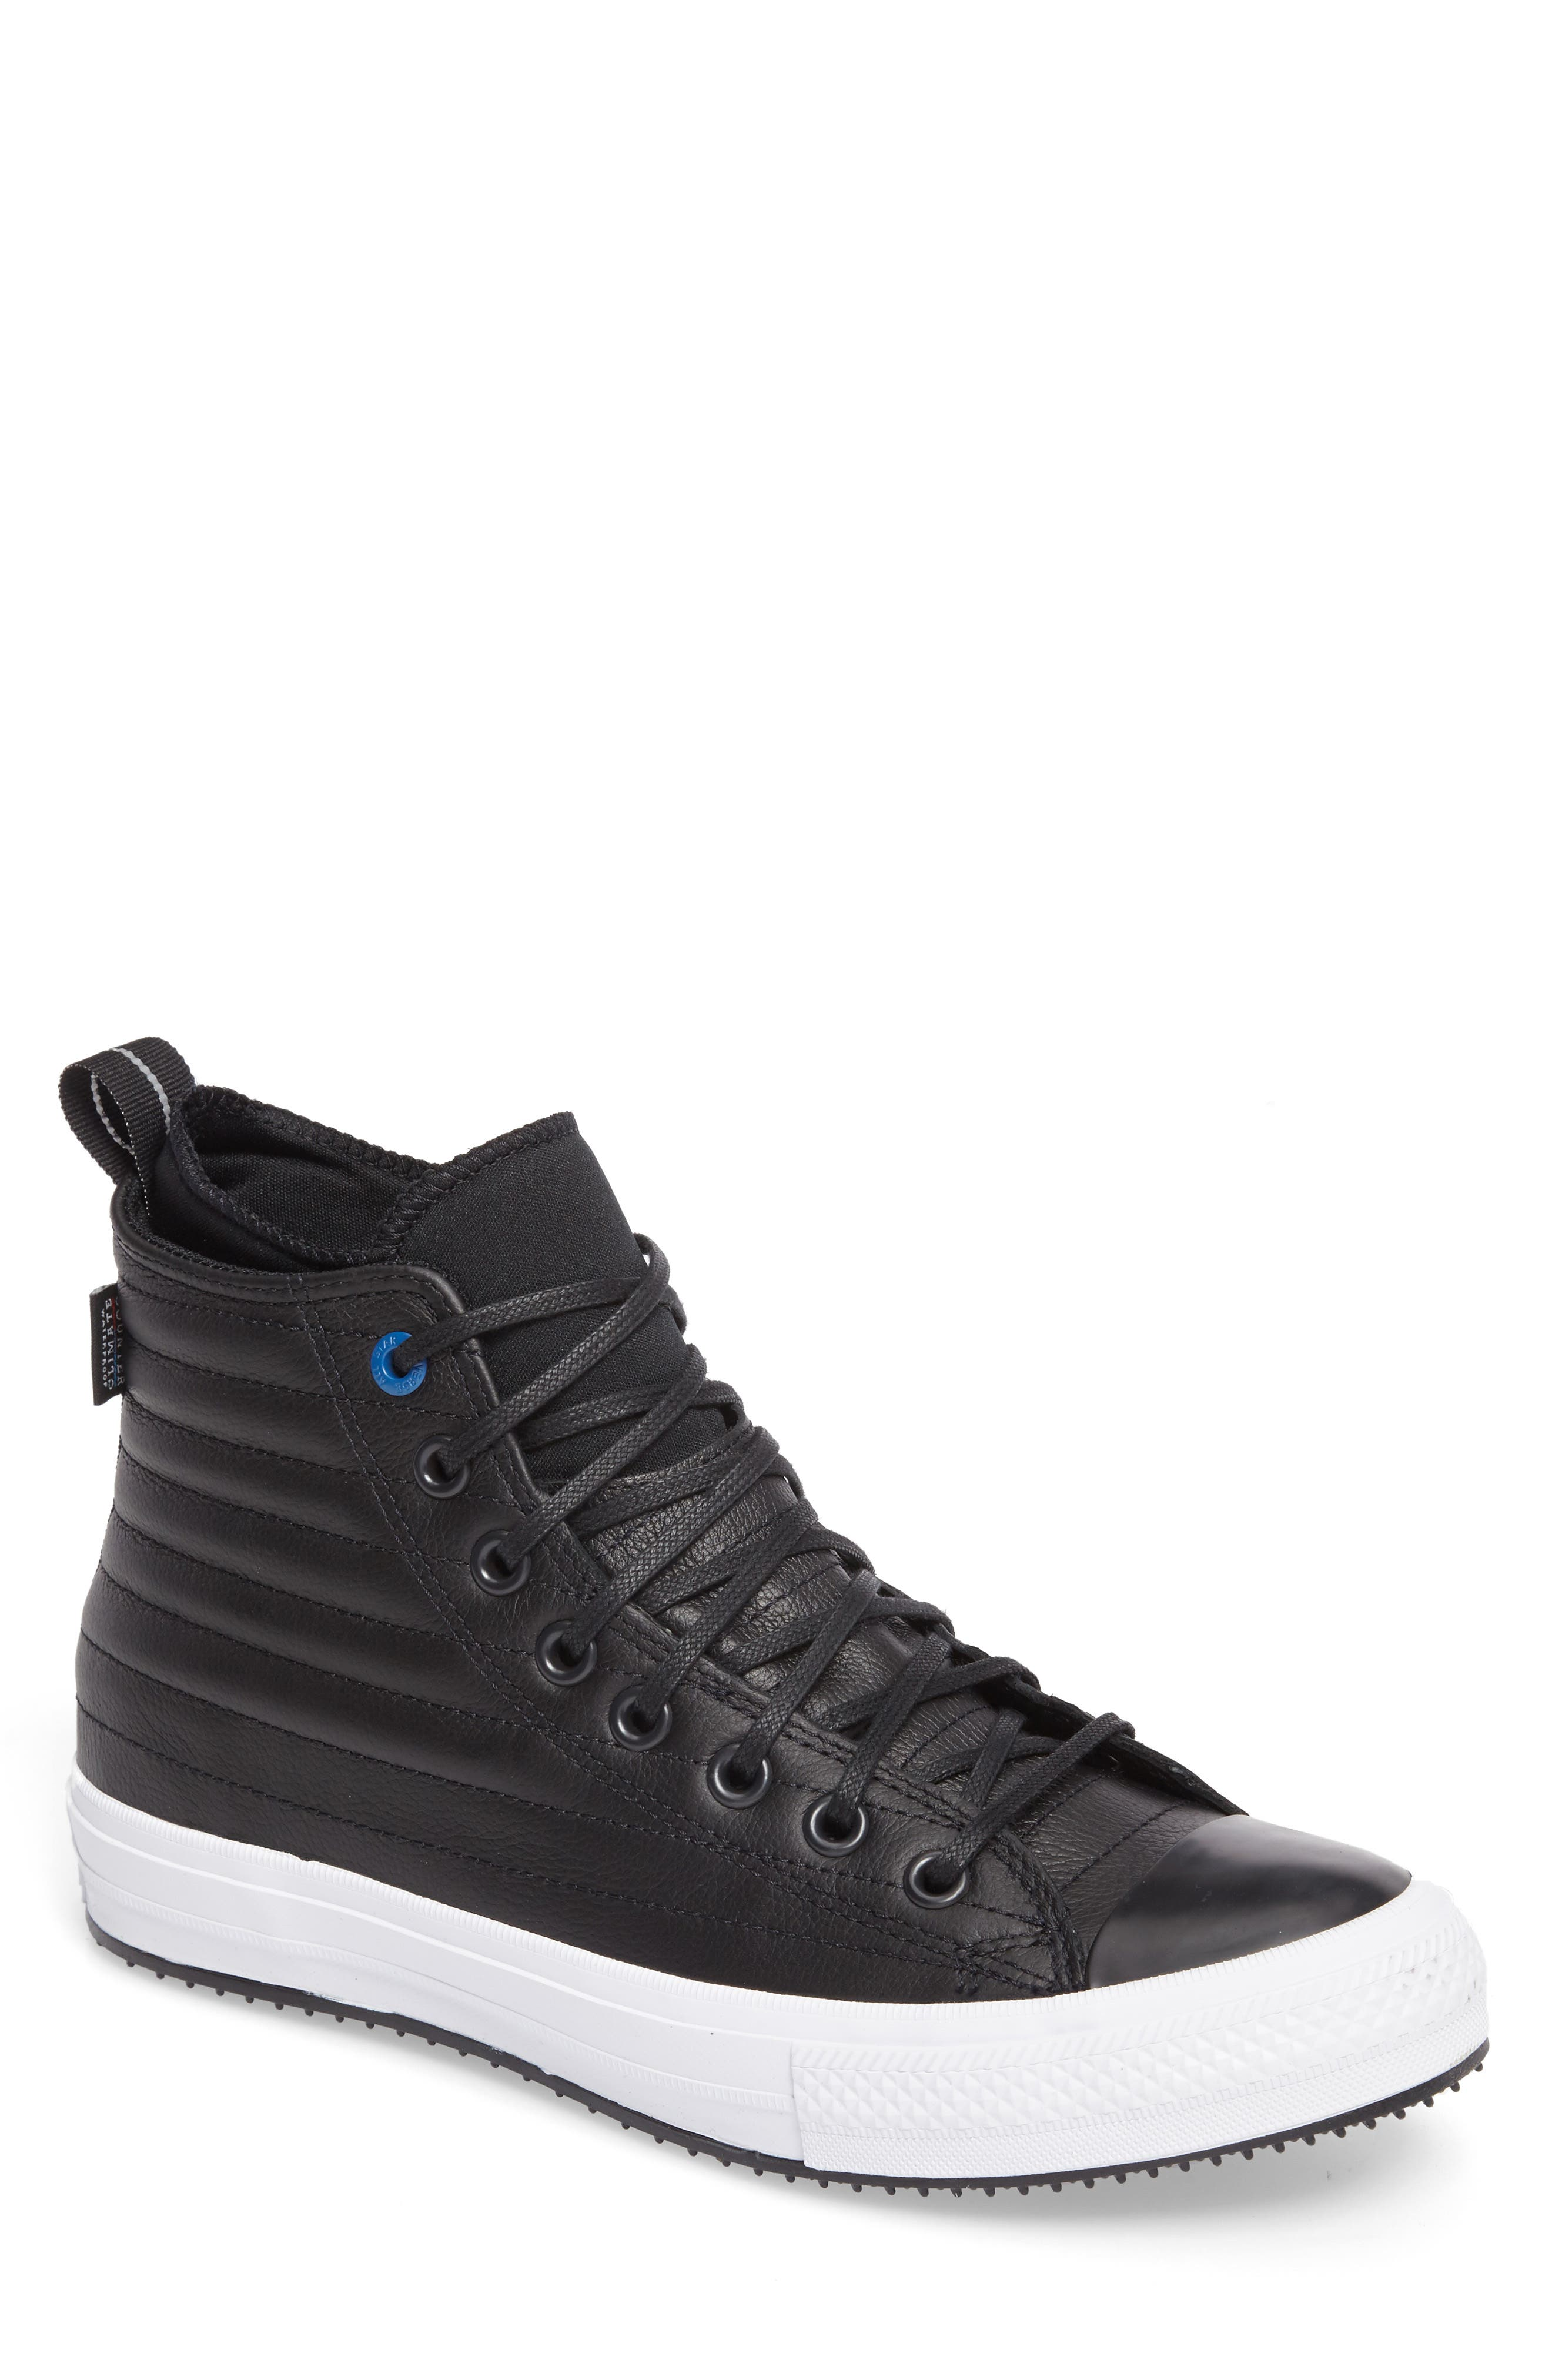 Chuck Taylor<sup>®</sup> All Star<sup>®</sup> Waterproof Quilted Sneaker,                             Main thumbnail 1, color,                             001